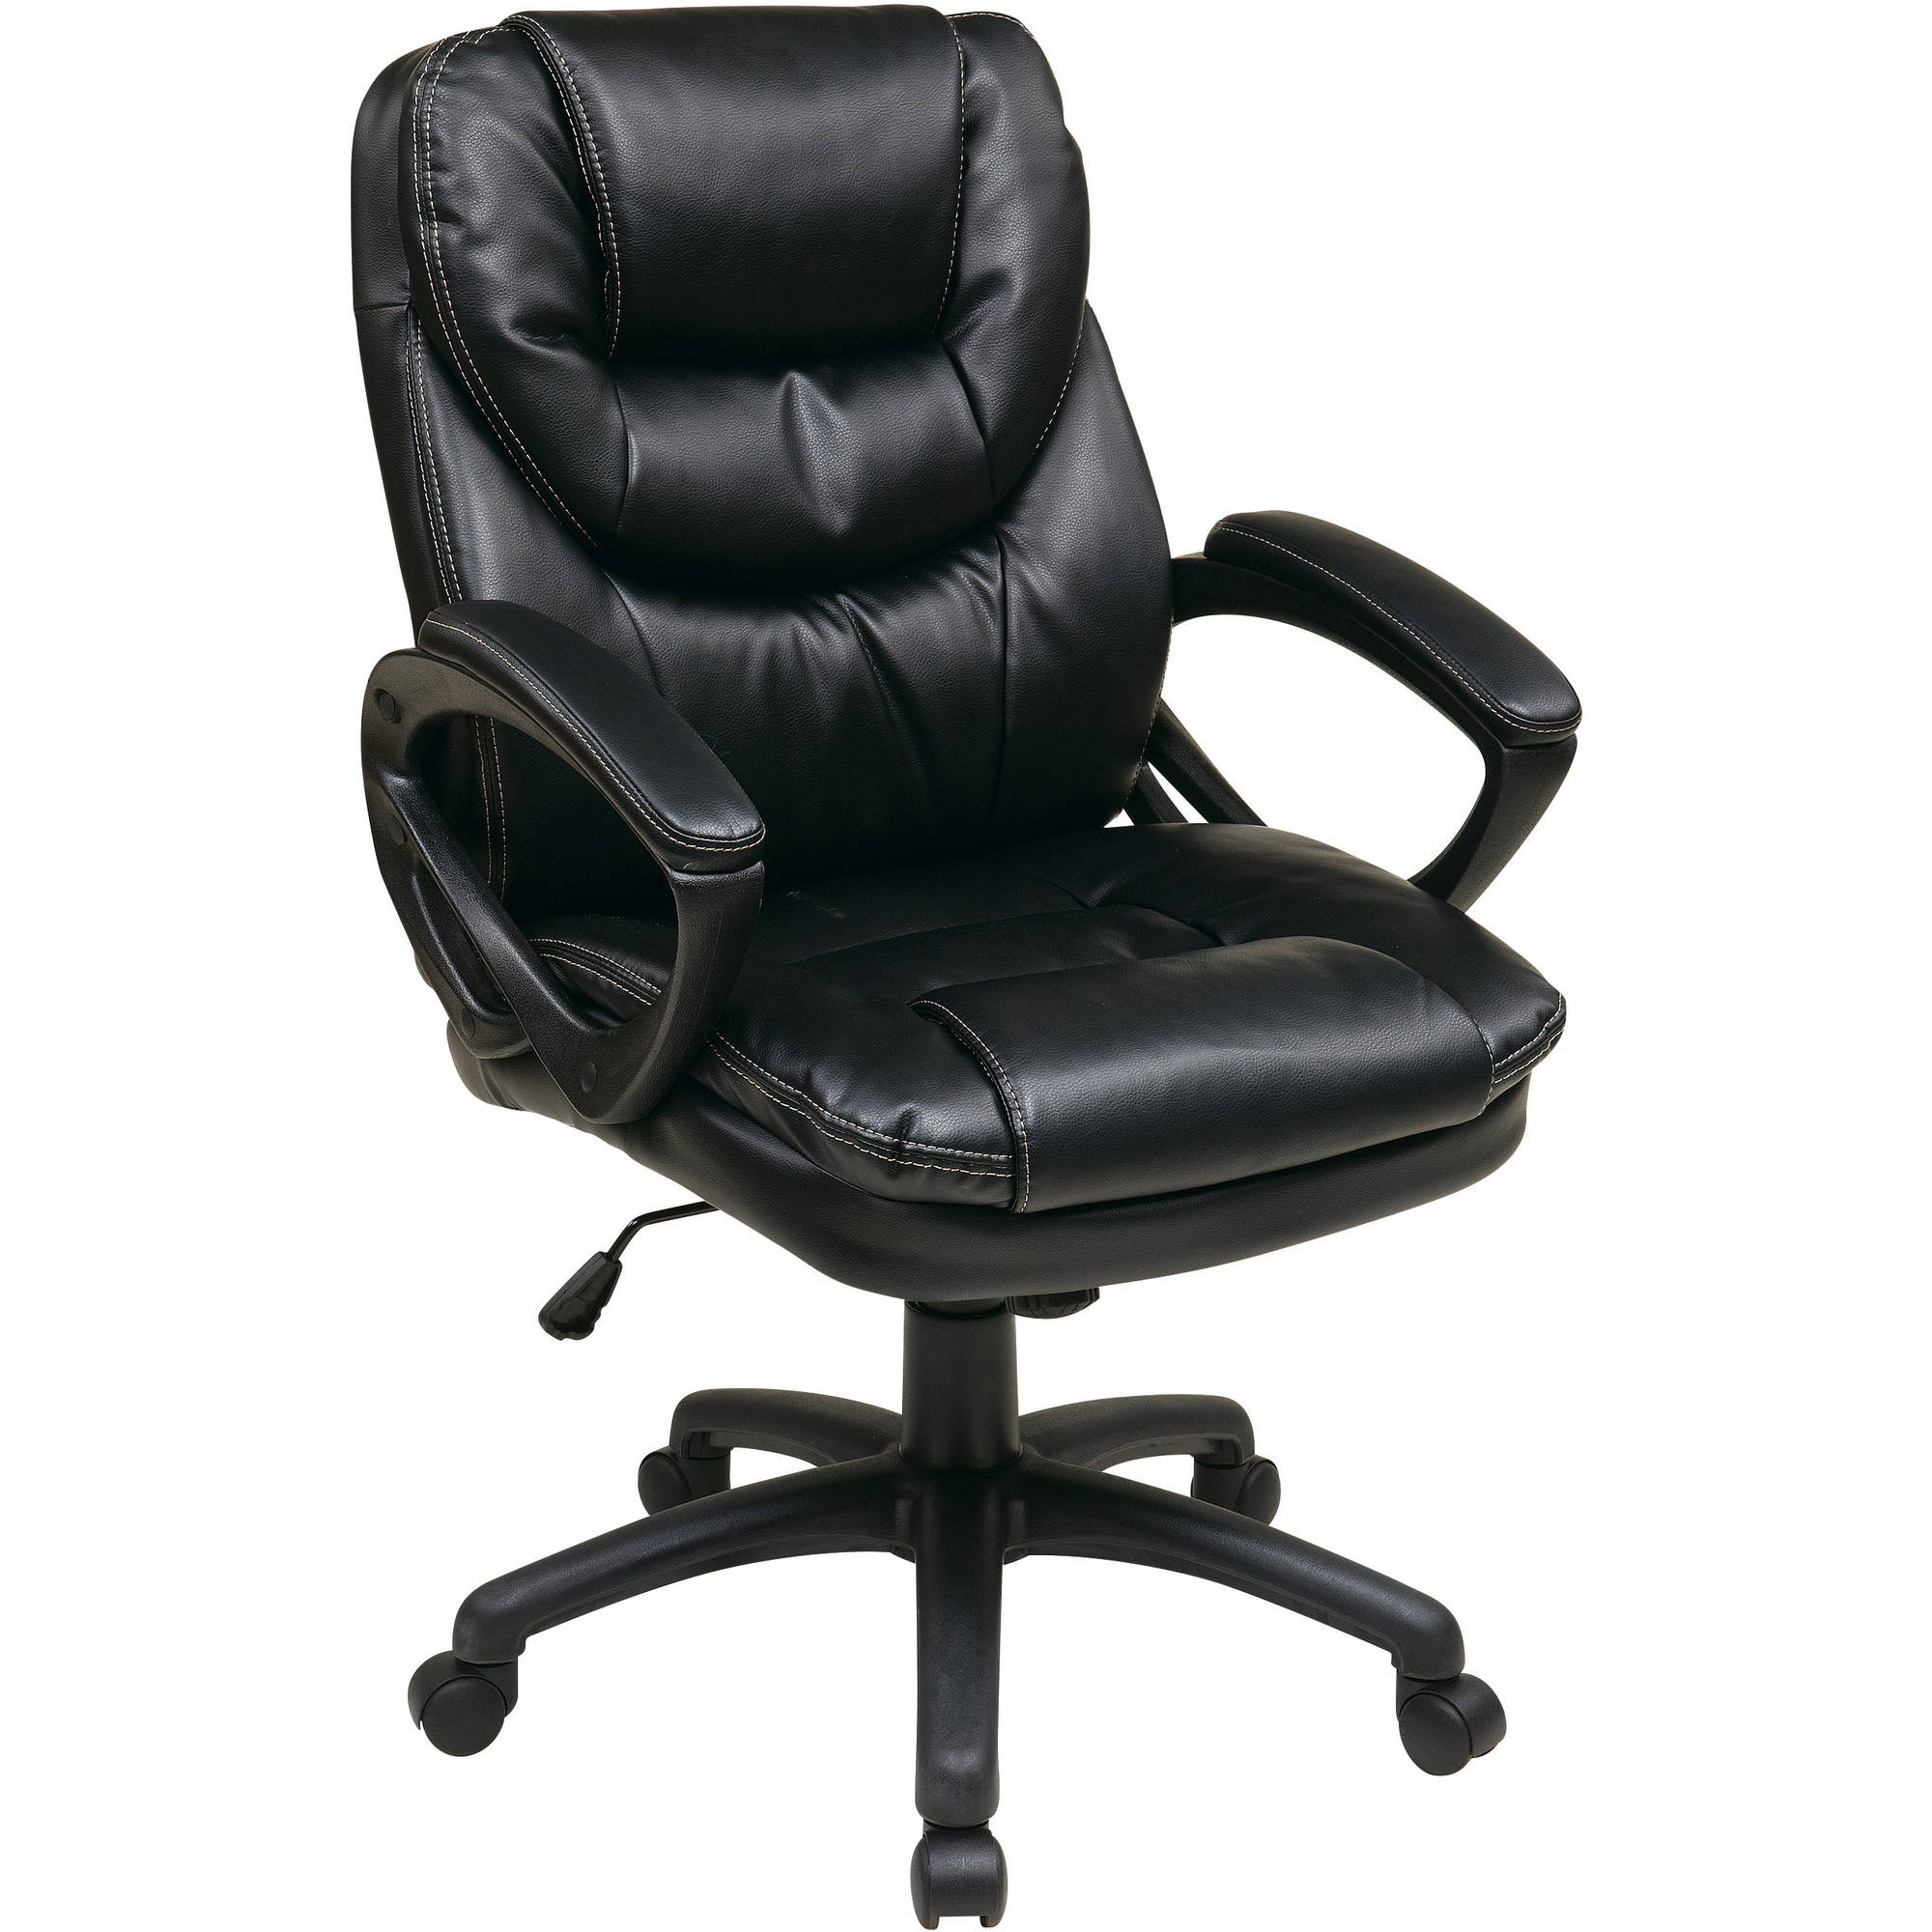 Faux Leather Executive Swivel Manageru0027s Office Chair With Padded Arms    Walmart.com